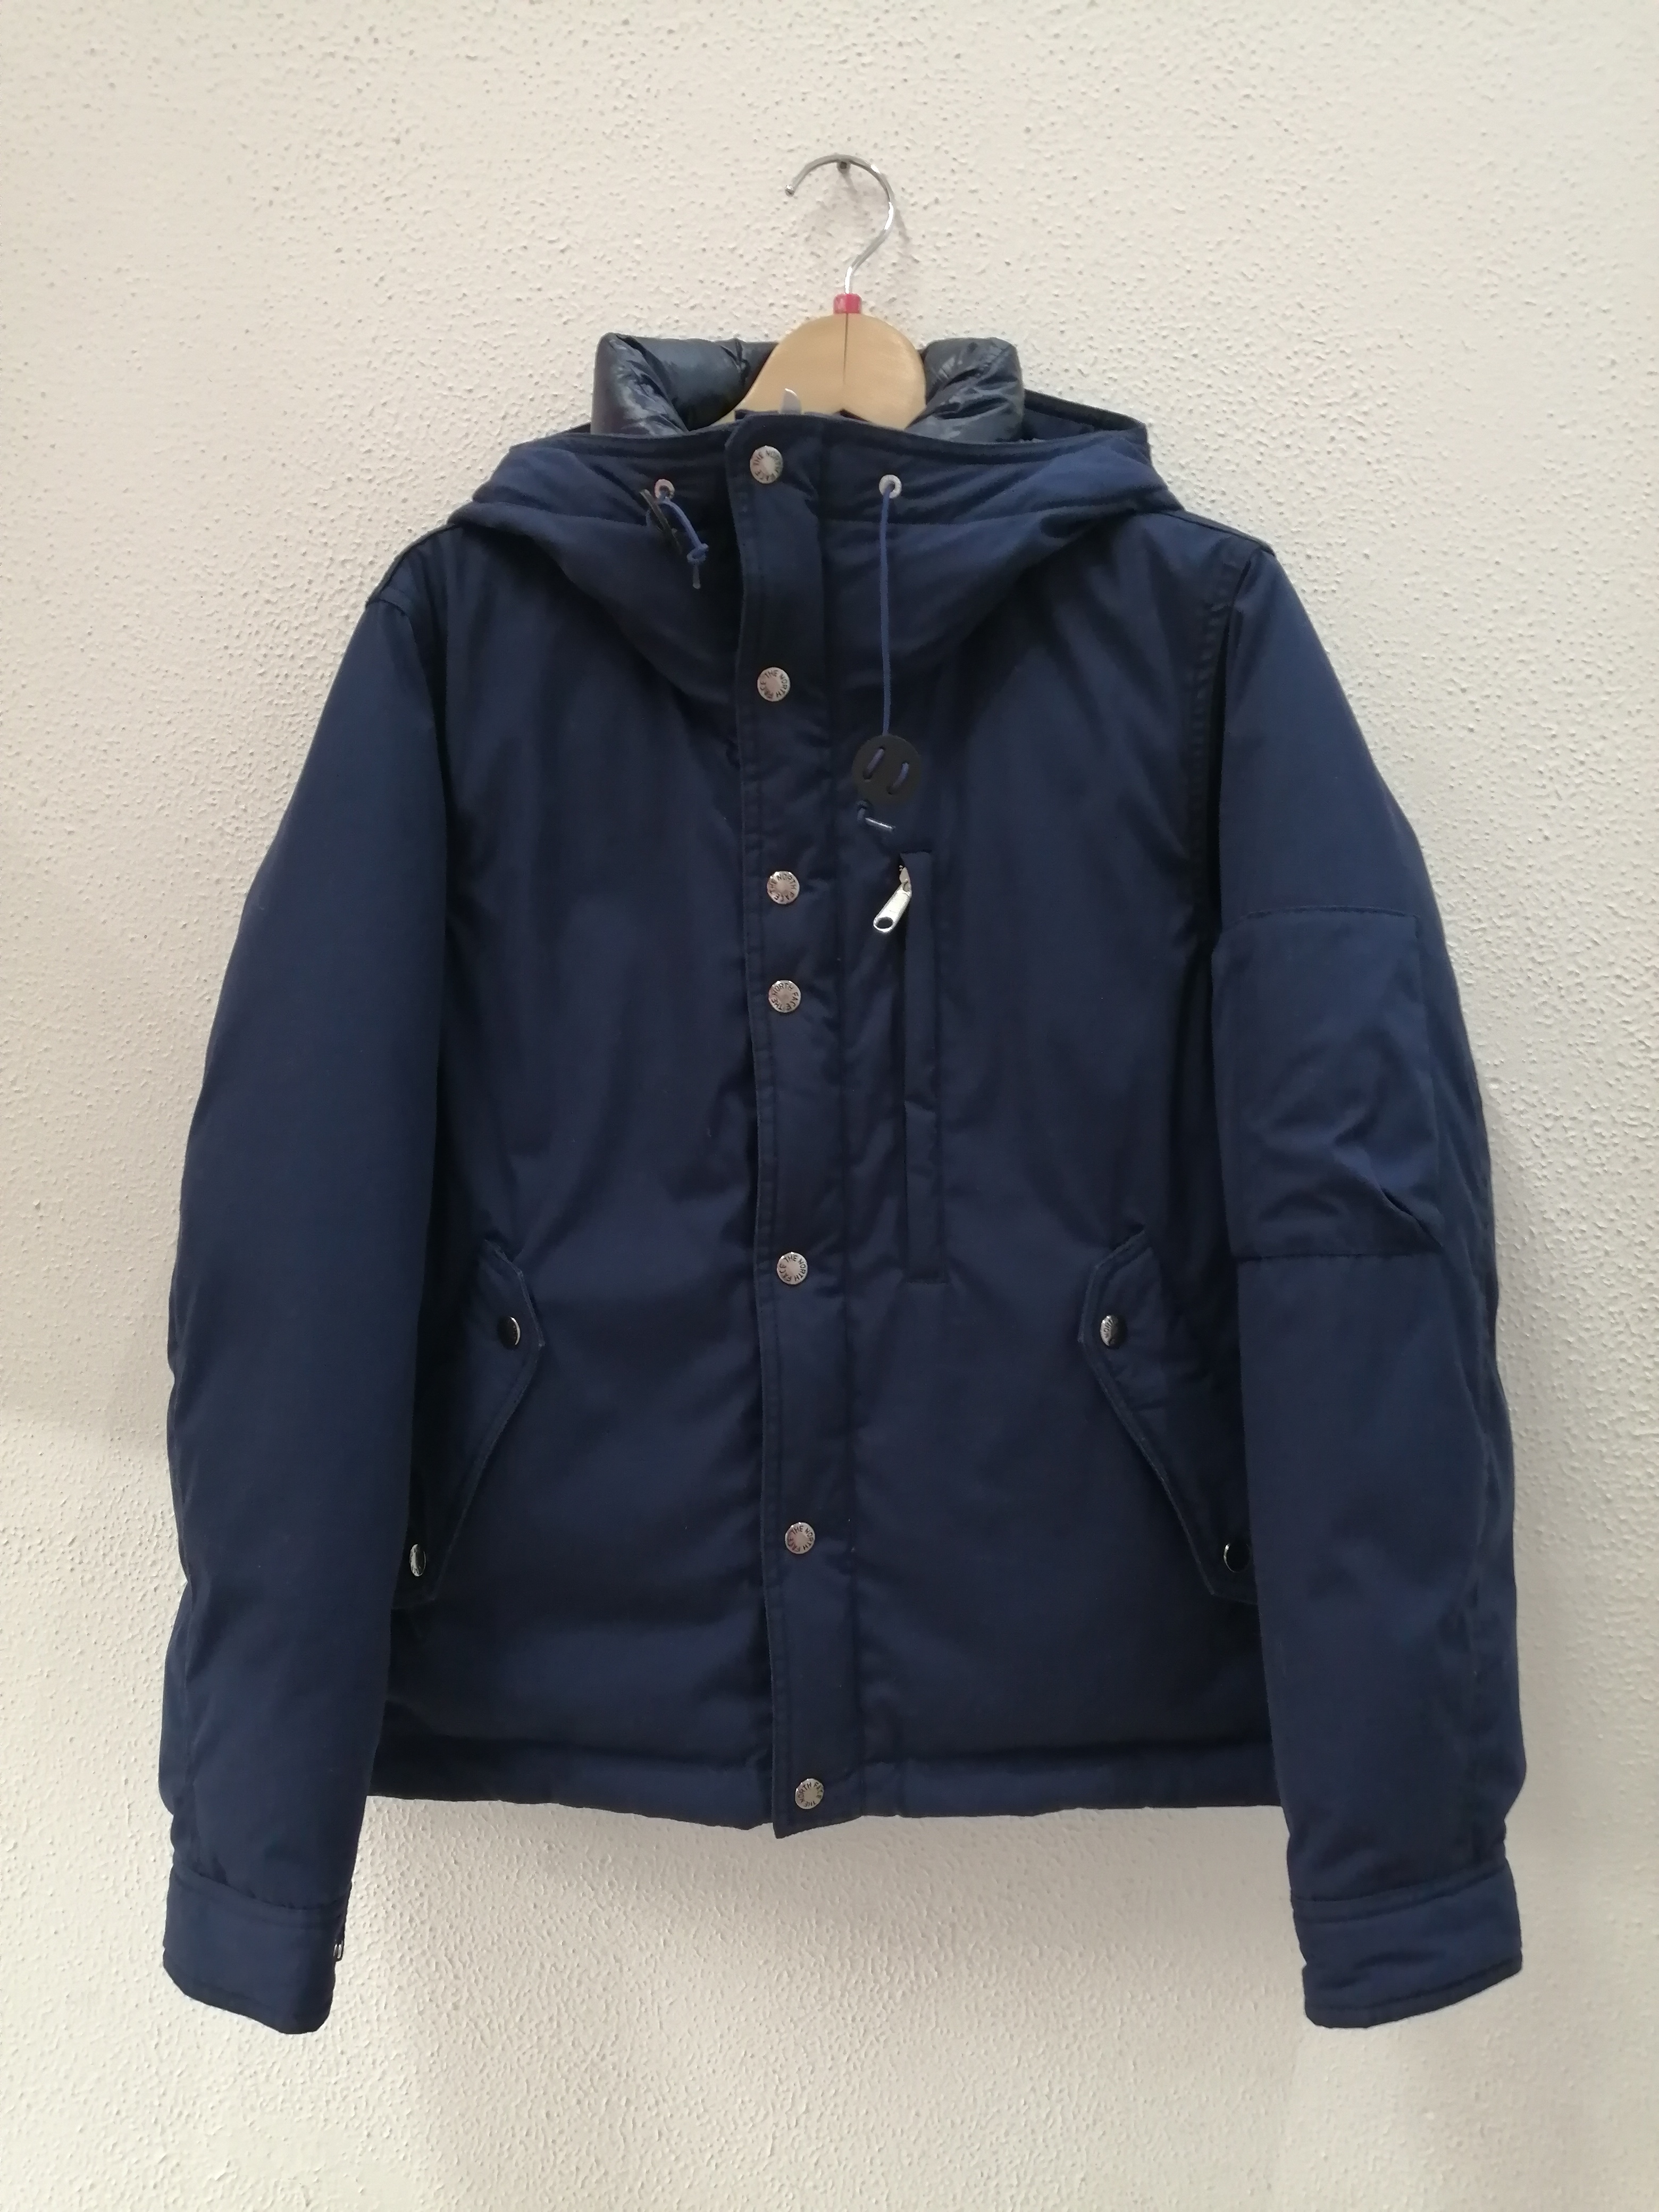 65/35MOUNTAIN SHORT DOWN PARKA|THE NORTH FACE PURPLE LABEL